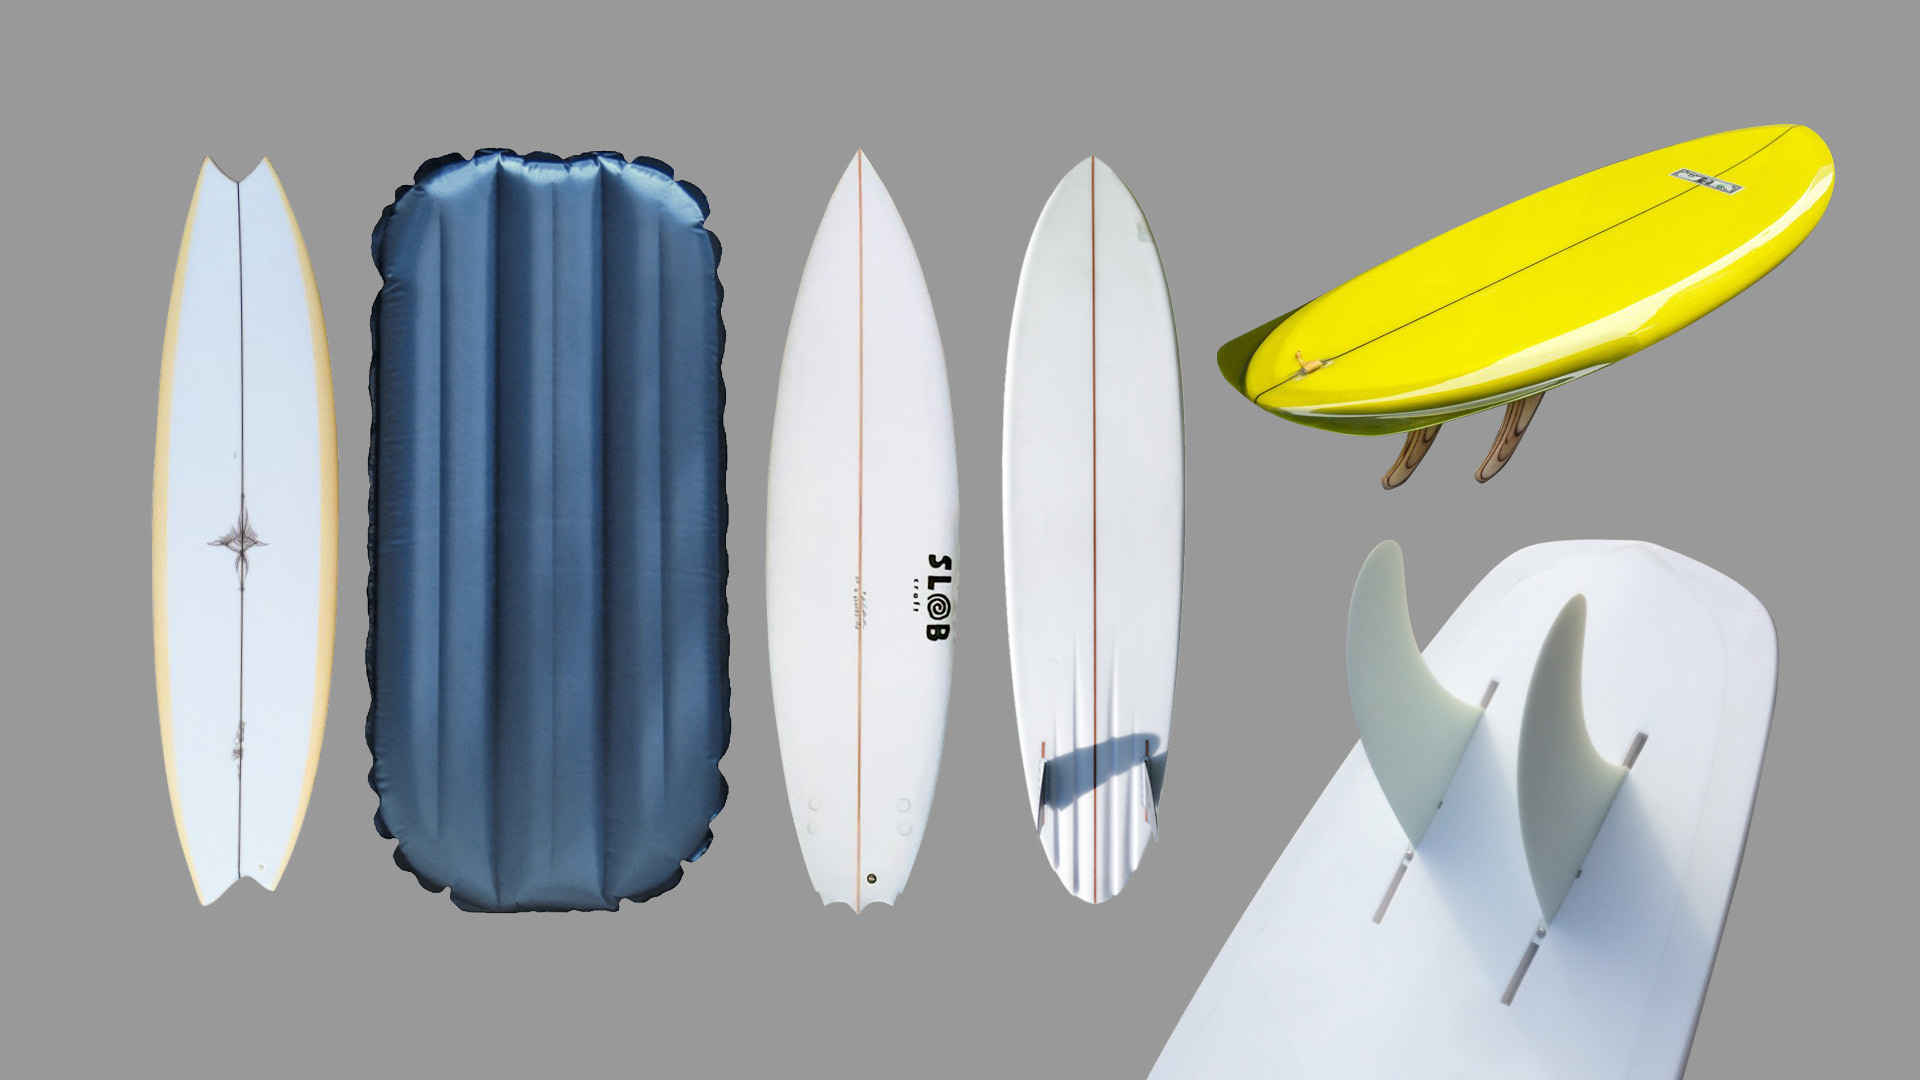 8 Unconventional Boards We're Dying to Try This Season